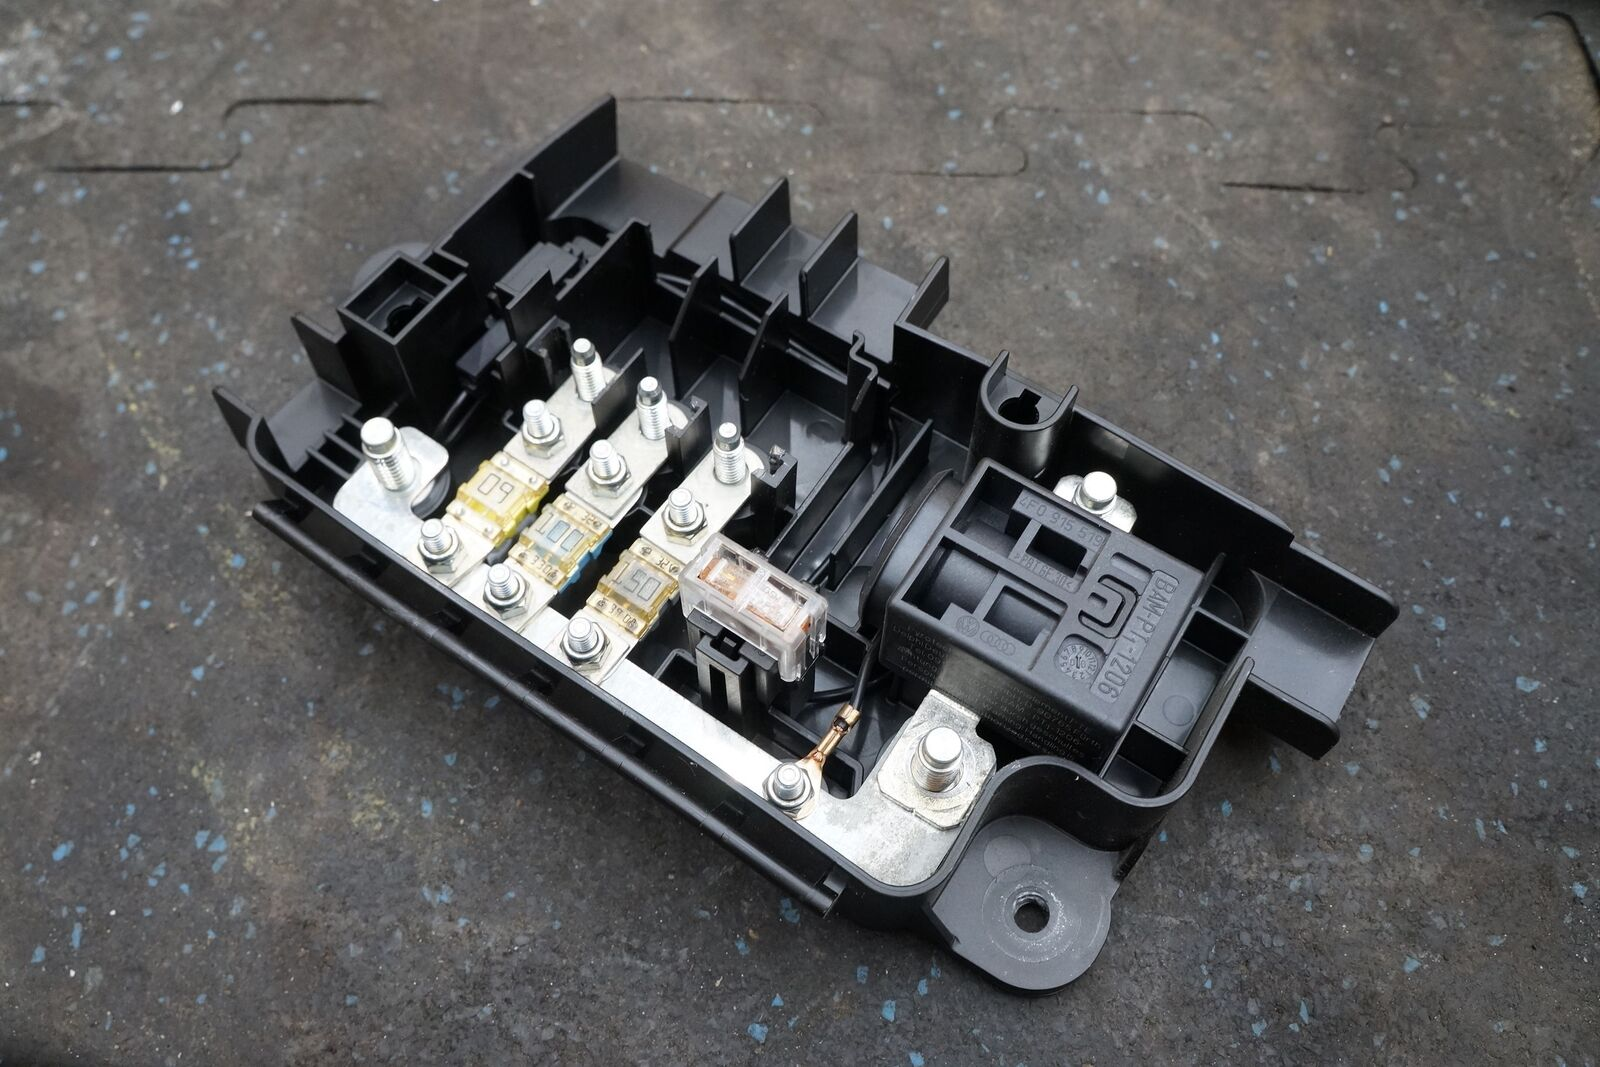 battery fuse box on audi best part of wiring diagrambattery fuse box block cut off switch 420937548a 4f0915519 audi r8battery fuse box